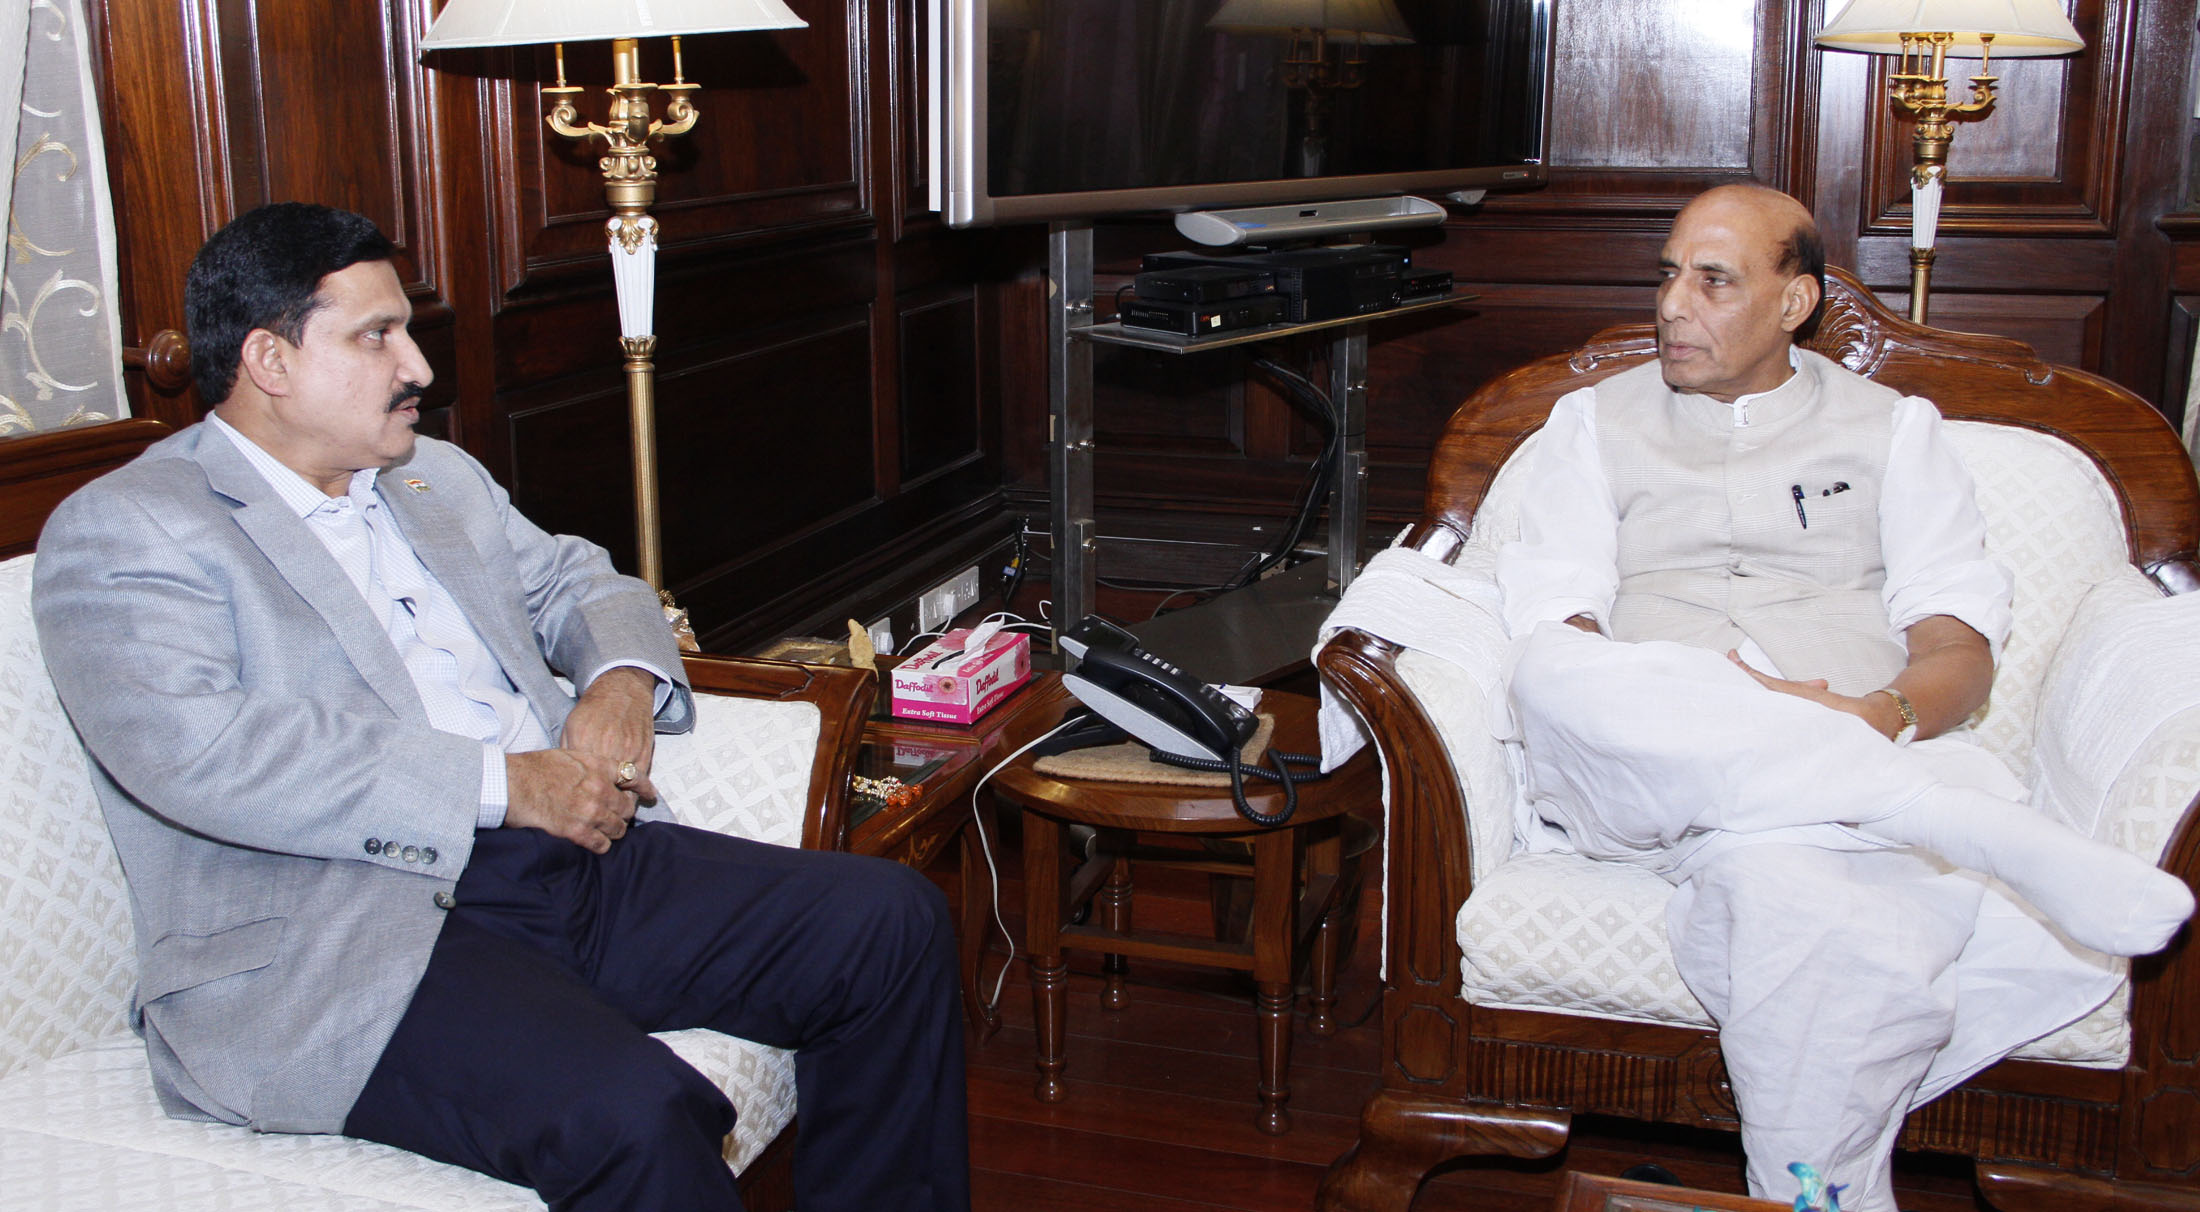 The Minister of State for Science and Technology and Earth Science, Shri Y.S. Chowdary calling on the Union Home Minister, Shri Rajnath Singh, in New Delhi on June 18, 2015.